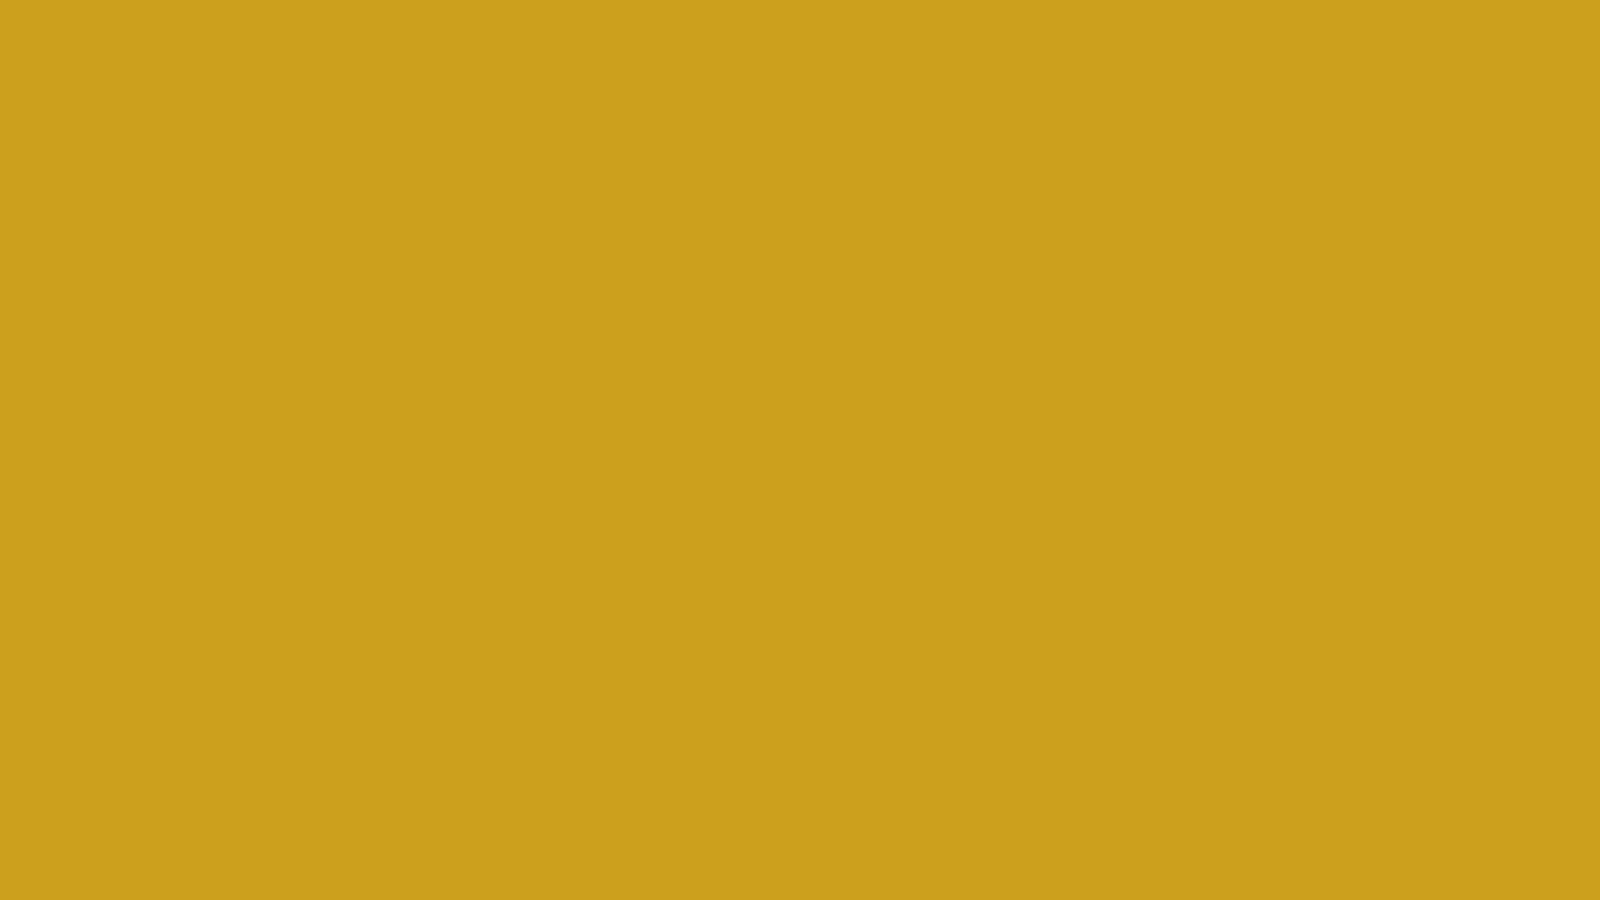 1600x900 Lemon Curry Solid Color Background